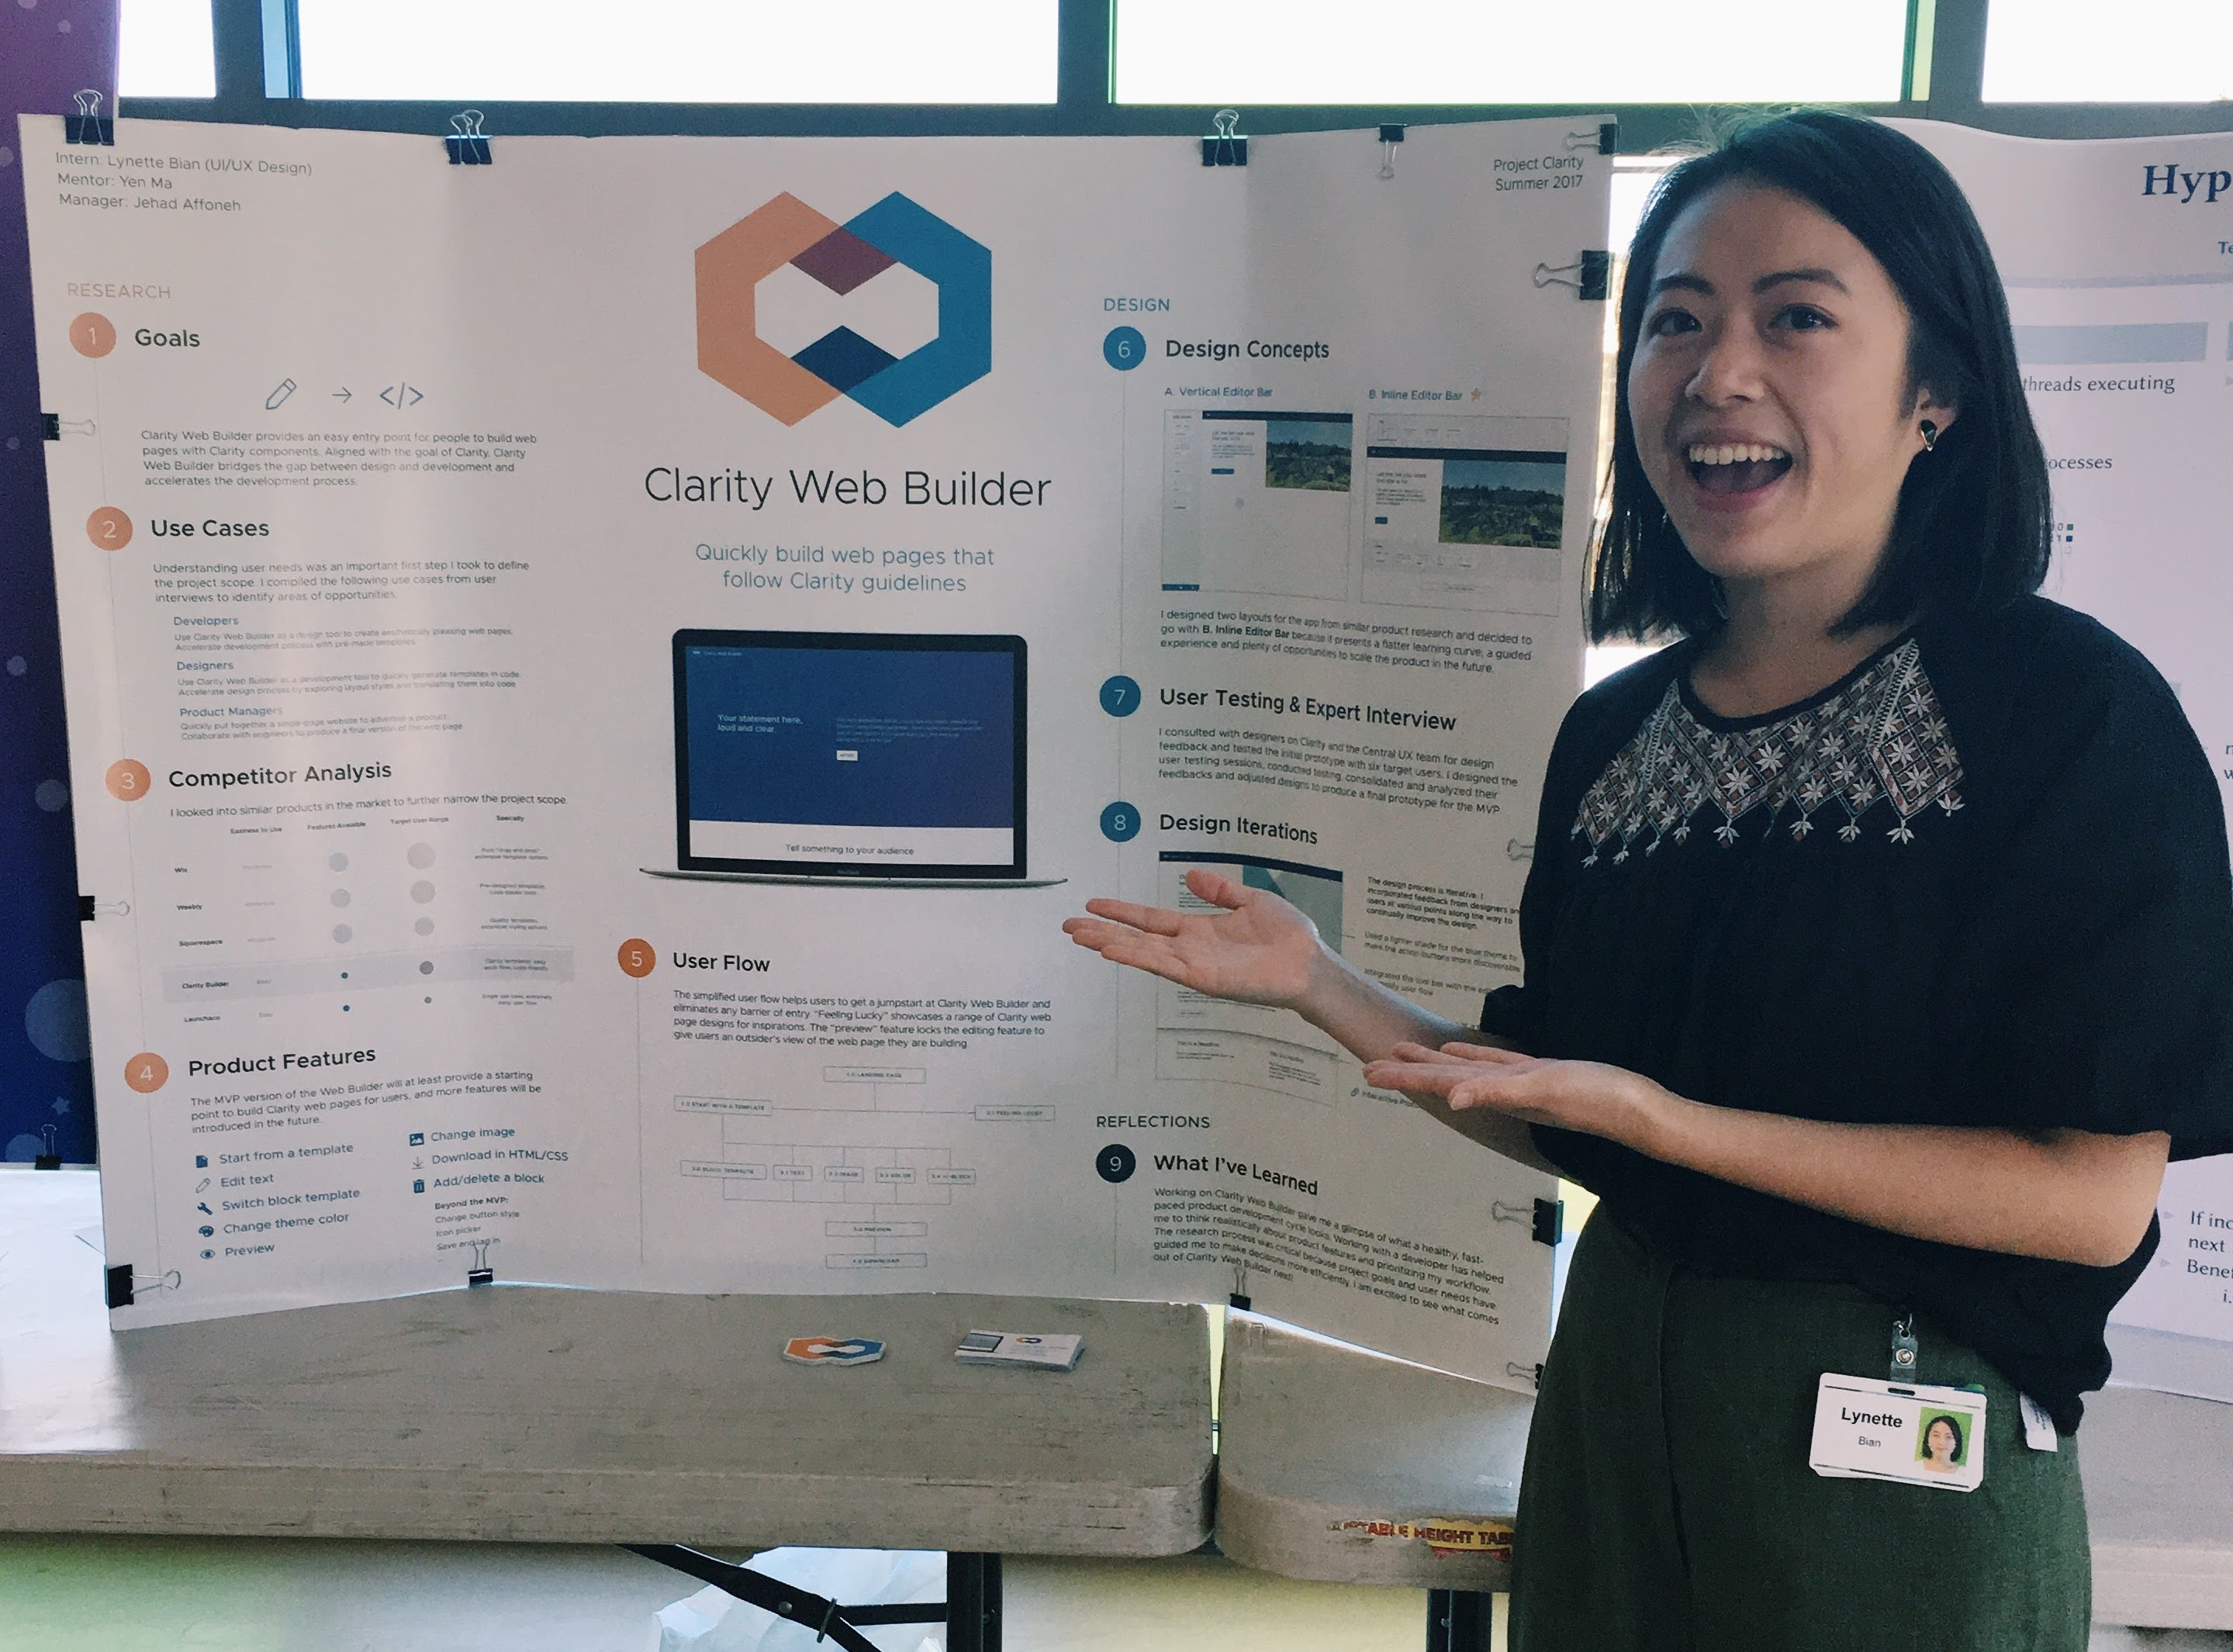 Photo 1: Lynette Bian '18 presenting her summer intern project at the end of her internship.